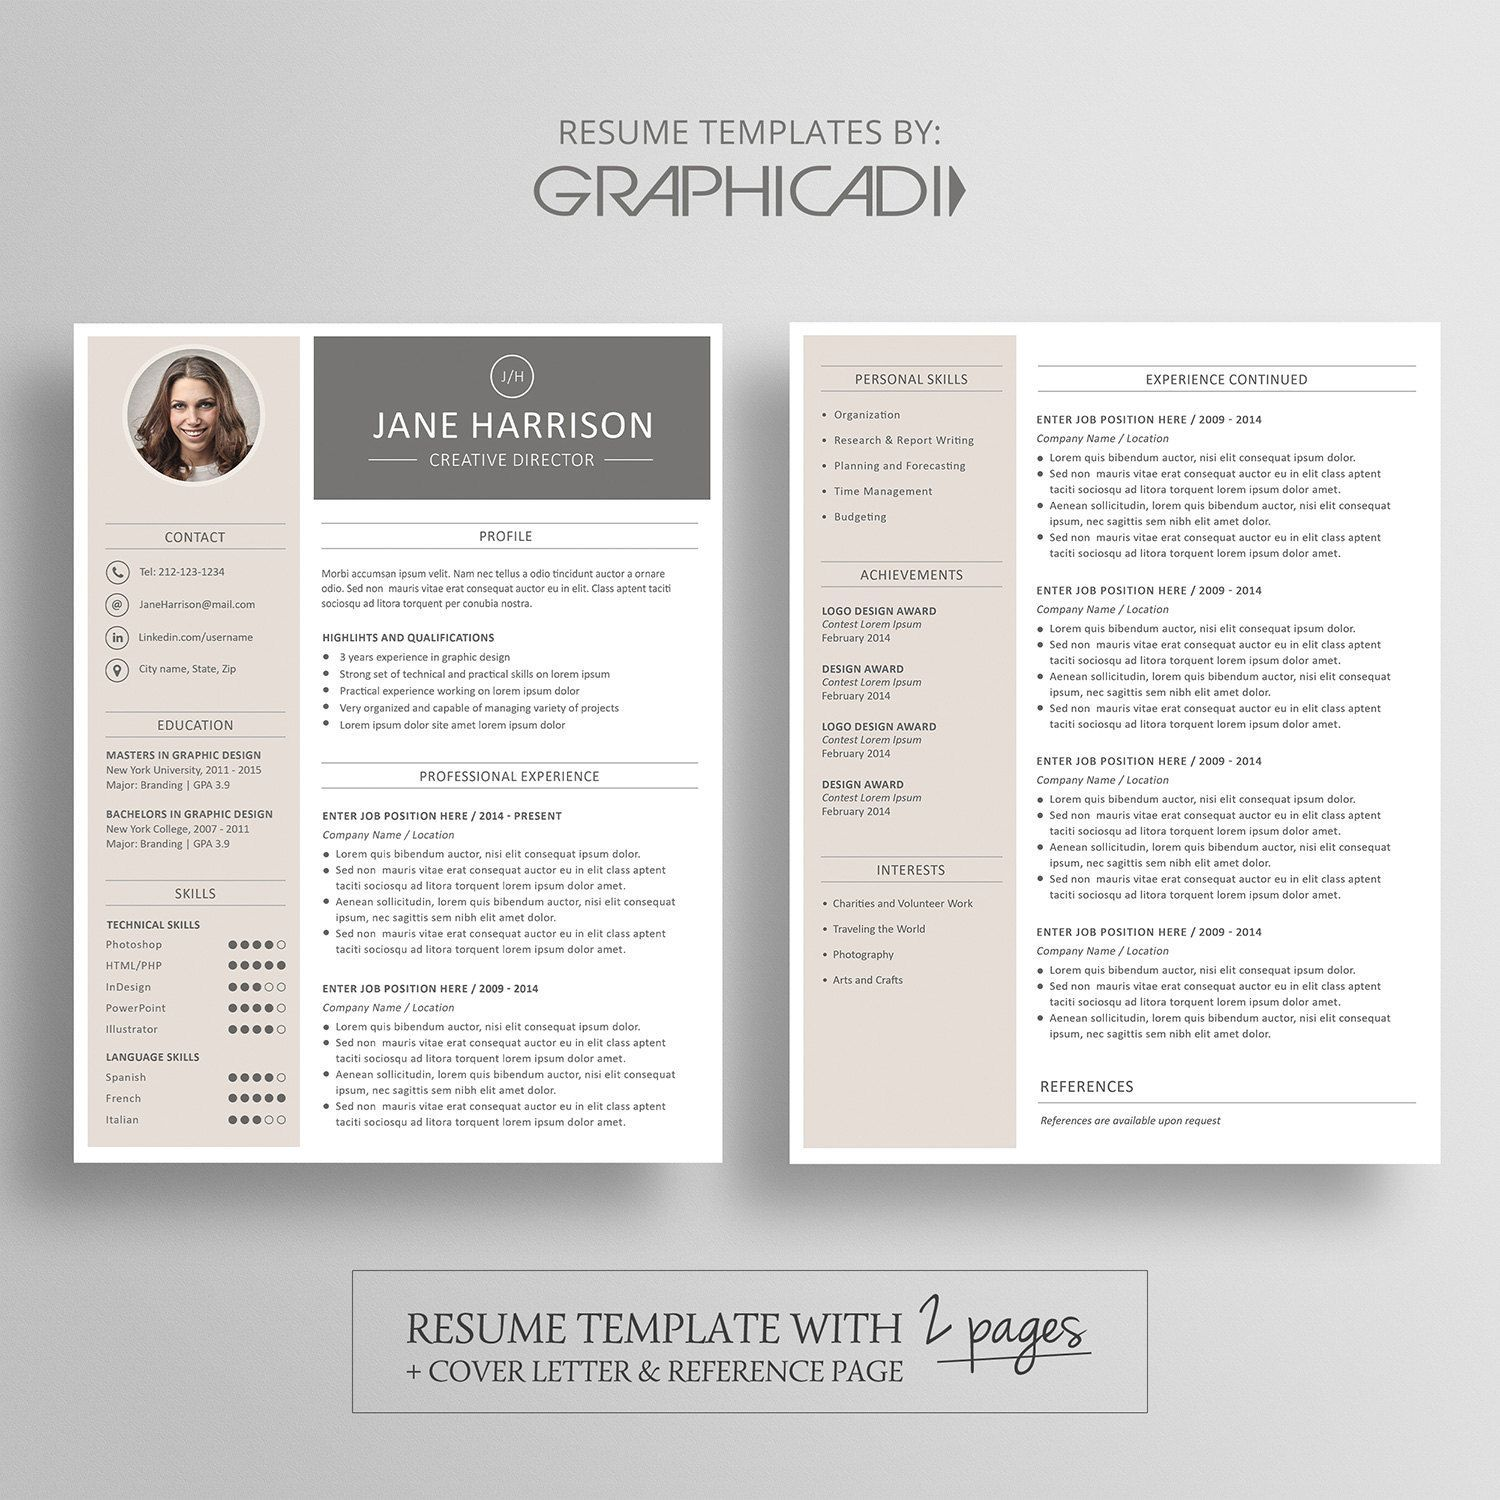 Modern Resume Template 2 Pages Cover Letter Reference Page For Templates Word 8056628037e0479c79a1c5e Resume Template Word Resume Template Resume Template Free